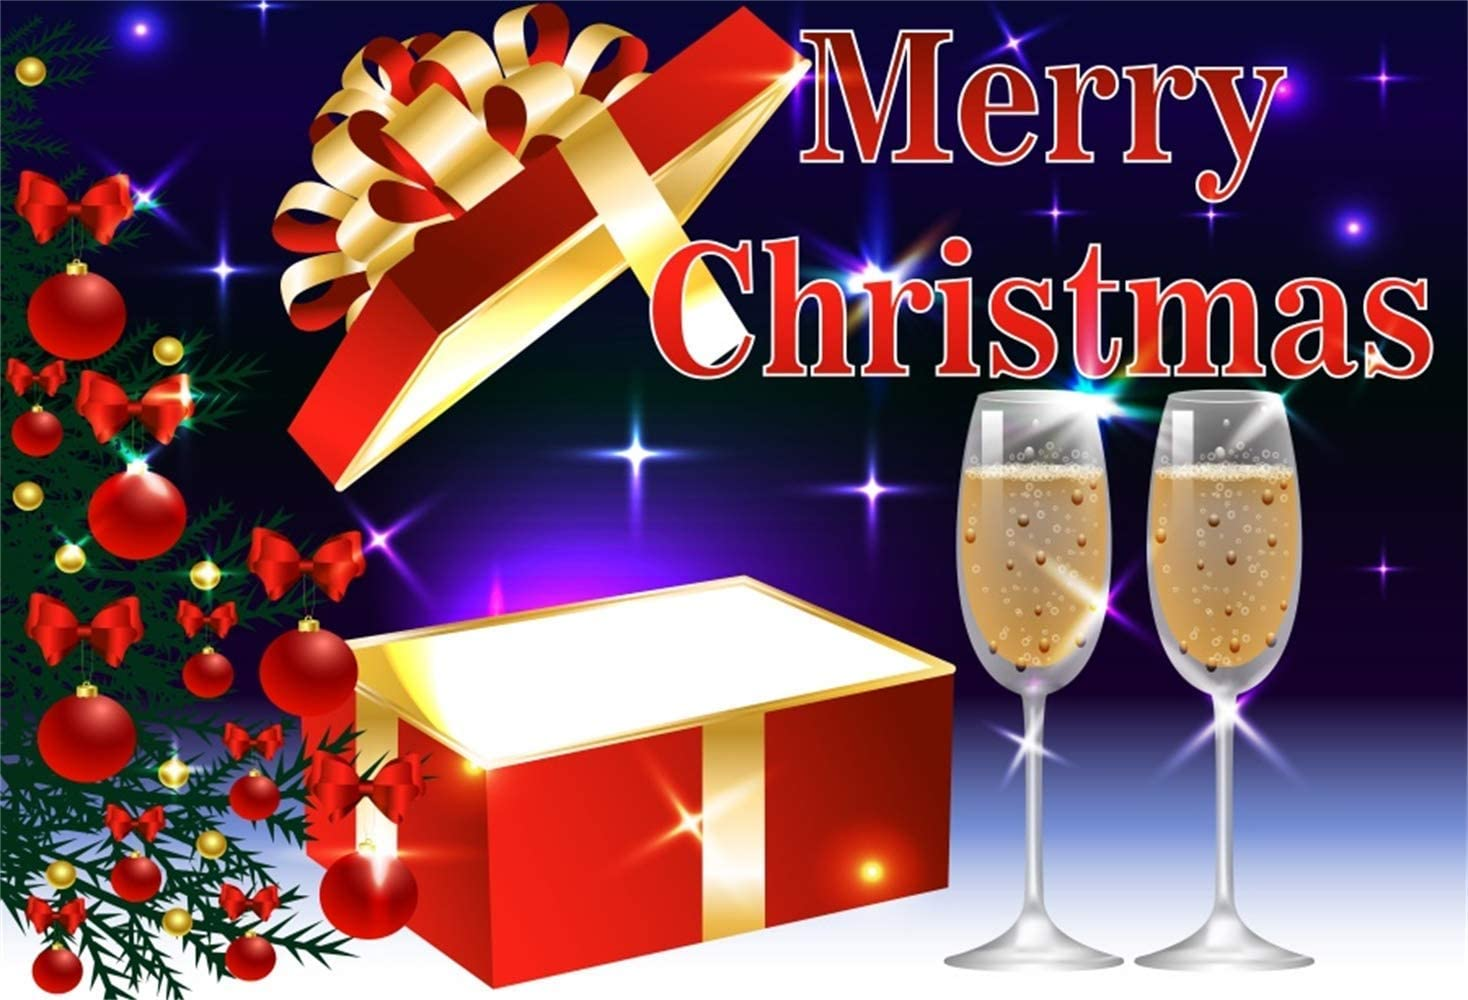 Merry Christmas Backdrop Polyester 8x6.5ft Cartoon Opened Red Gift Box Red Balls Decors Xmas Tree Champagne Goblets Shiny Stars Background Child Kids Baby Adult Shoot Xmas New Year Party Banner